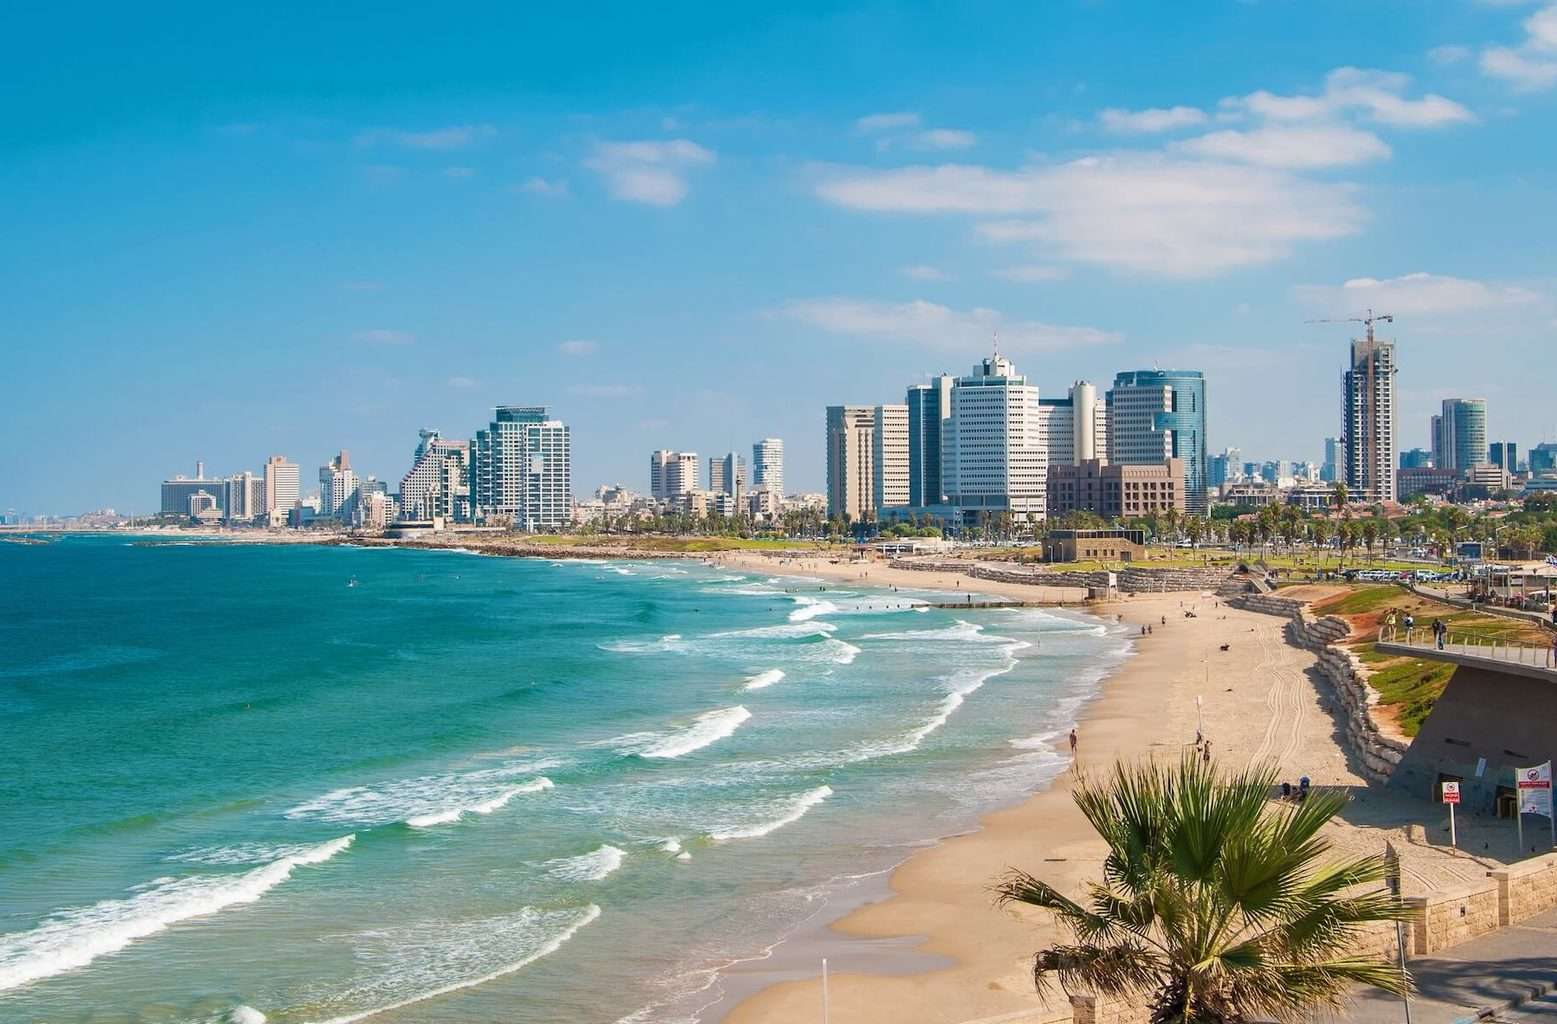 Tel Aviv holidays - beach and ocean view with city in background